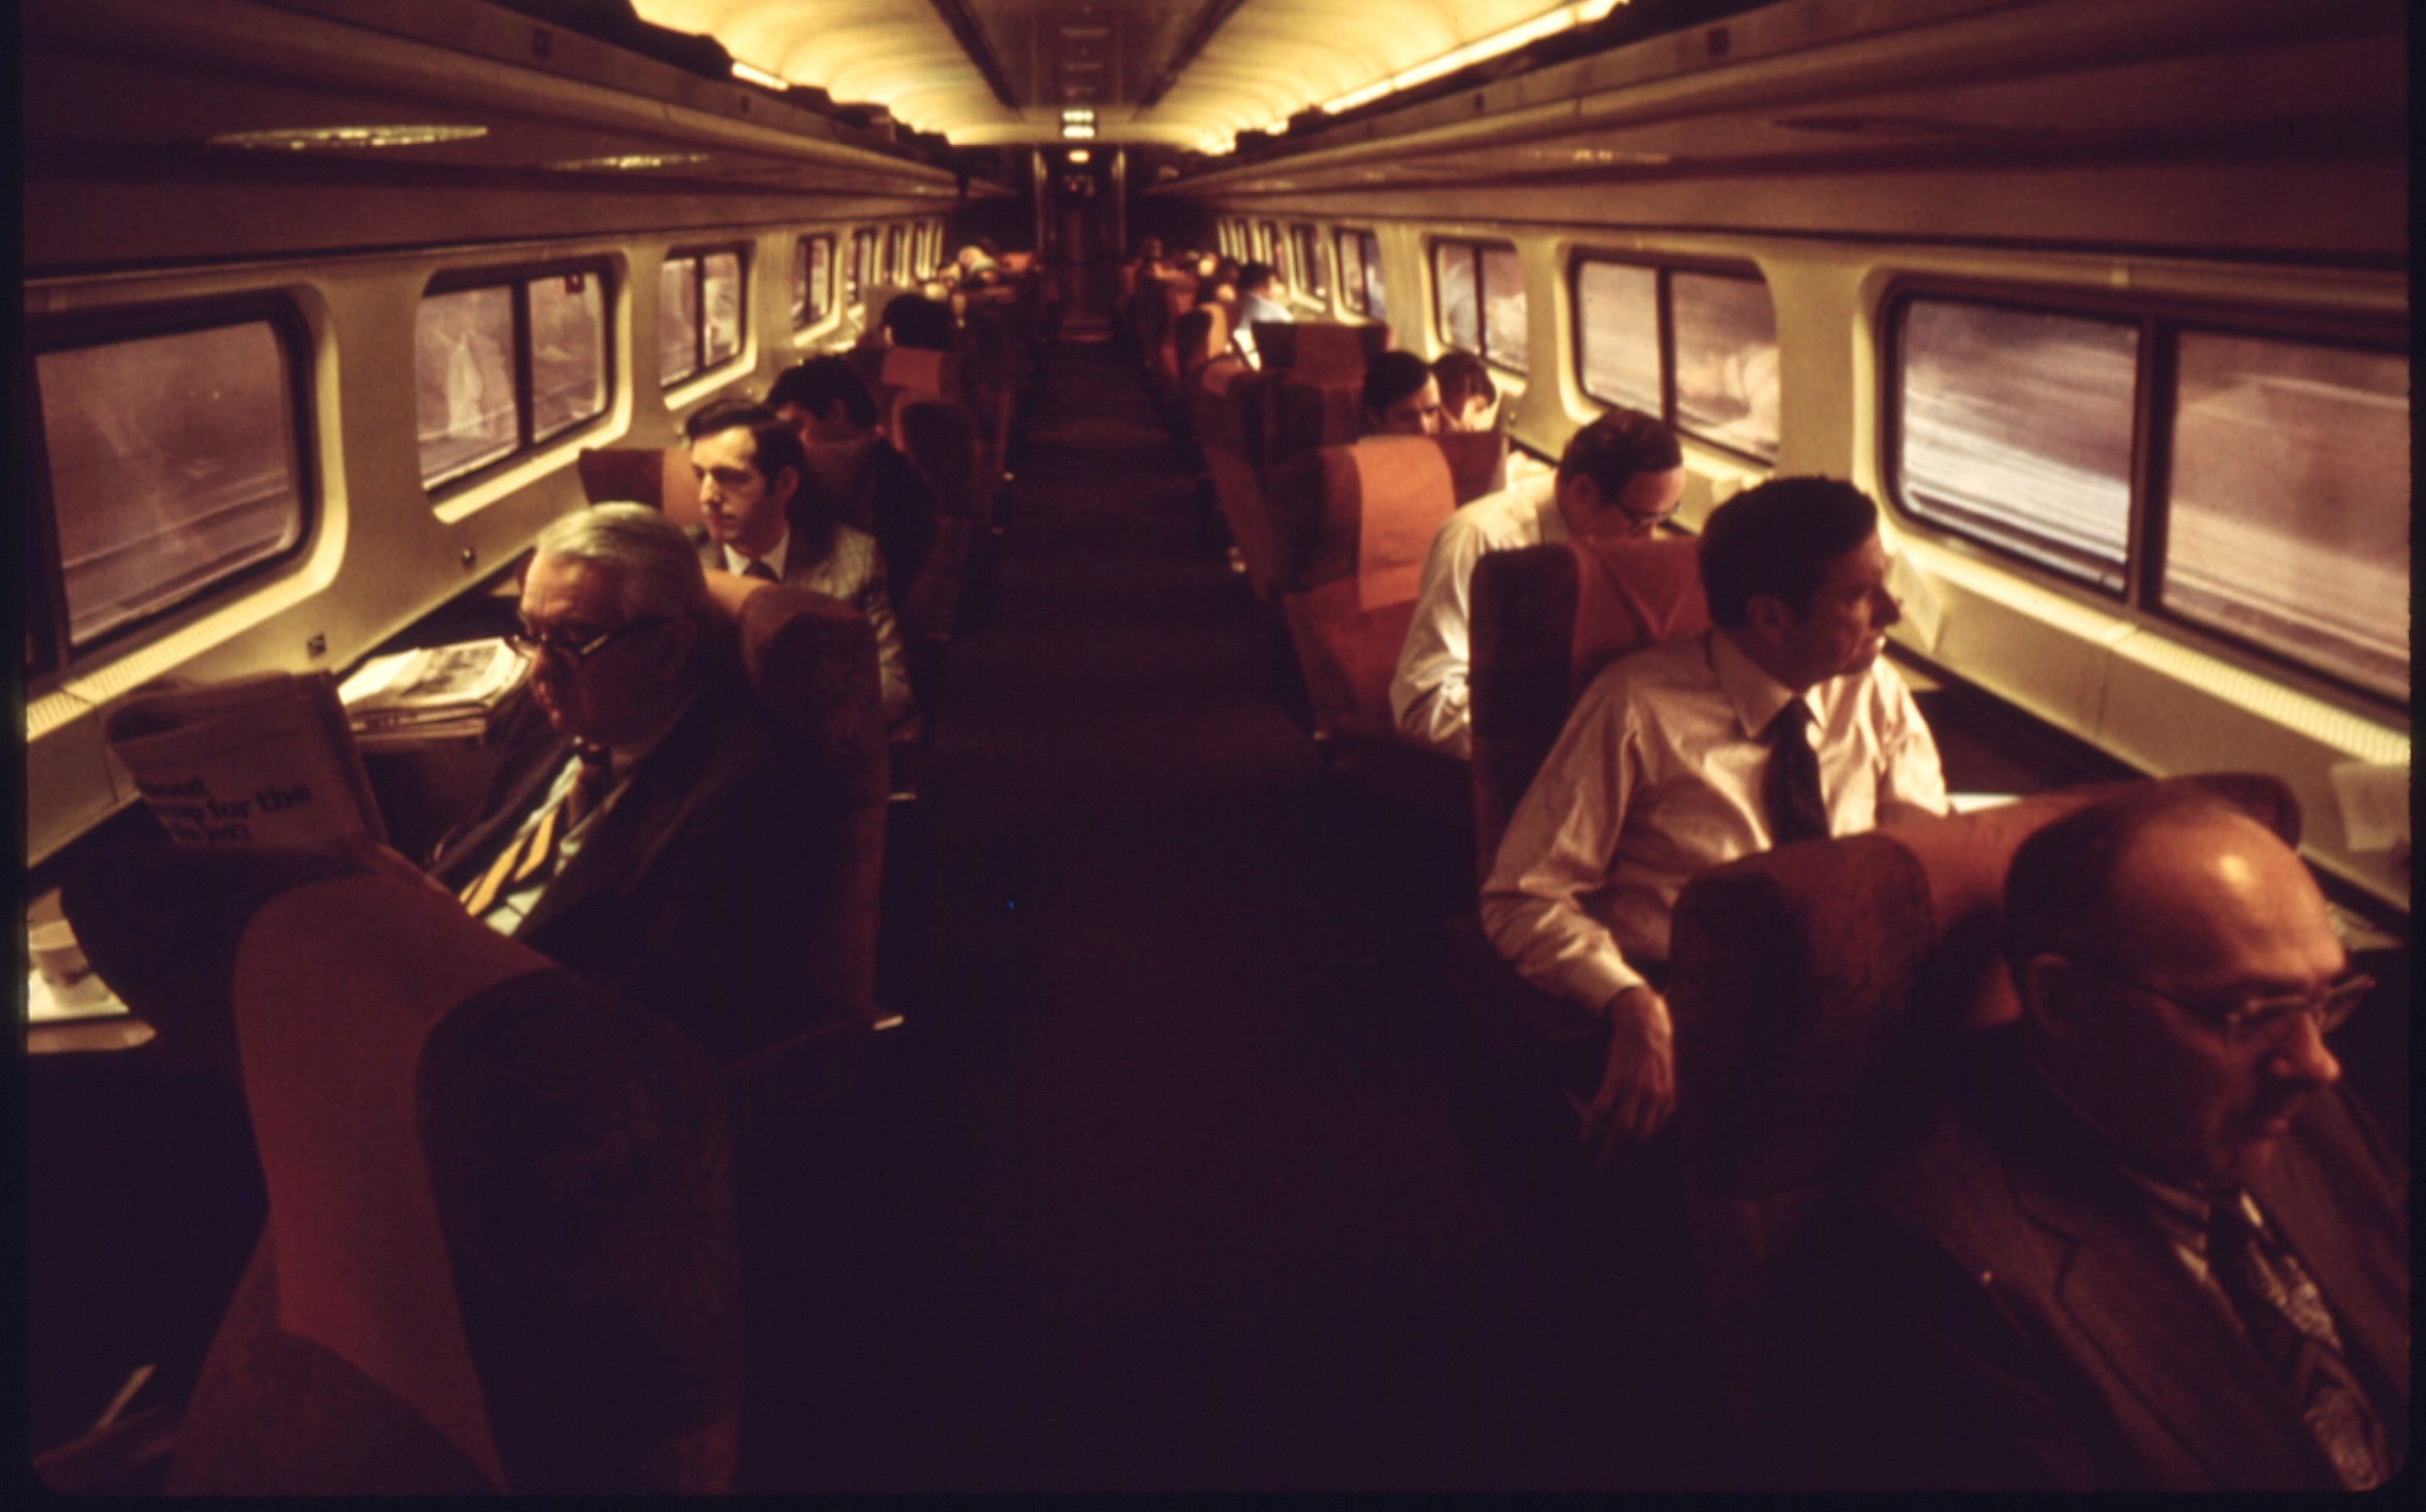 PASSENGERS_ON_ONE_OF_THE_AMTRAK_METROLINER_TRAINS_WHICH_RUN_BETWEEN_WASHINGTON,_DISTRICT_OF_COLUMBIA,_AND_NEW_YORK..._-_NARA_-_556656